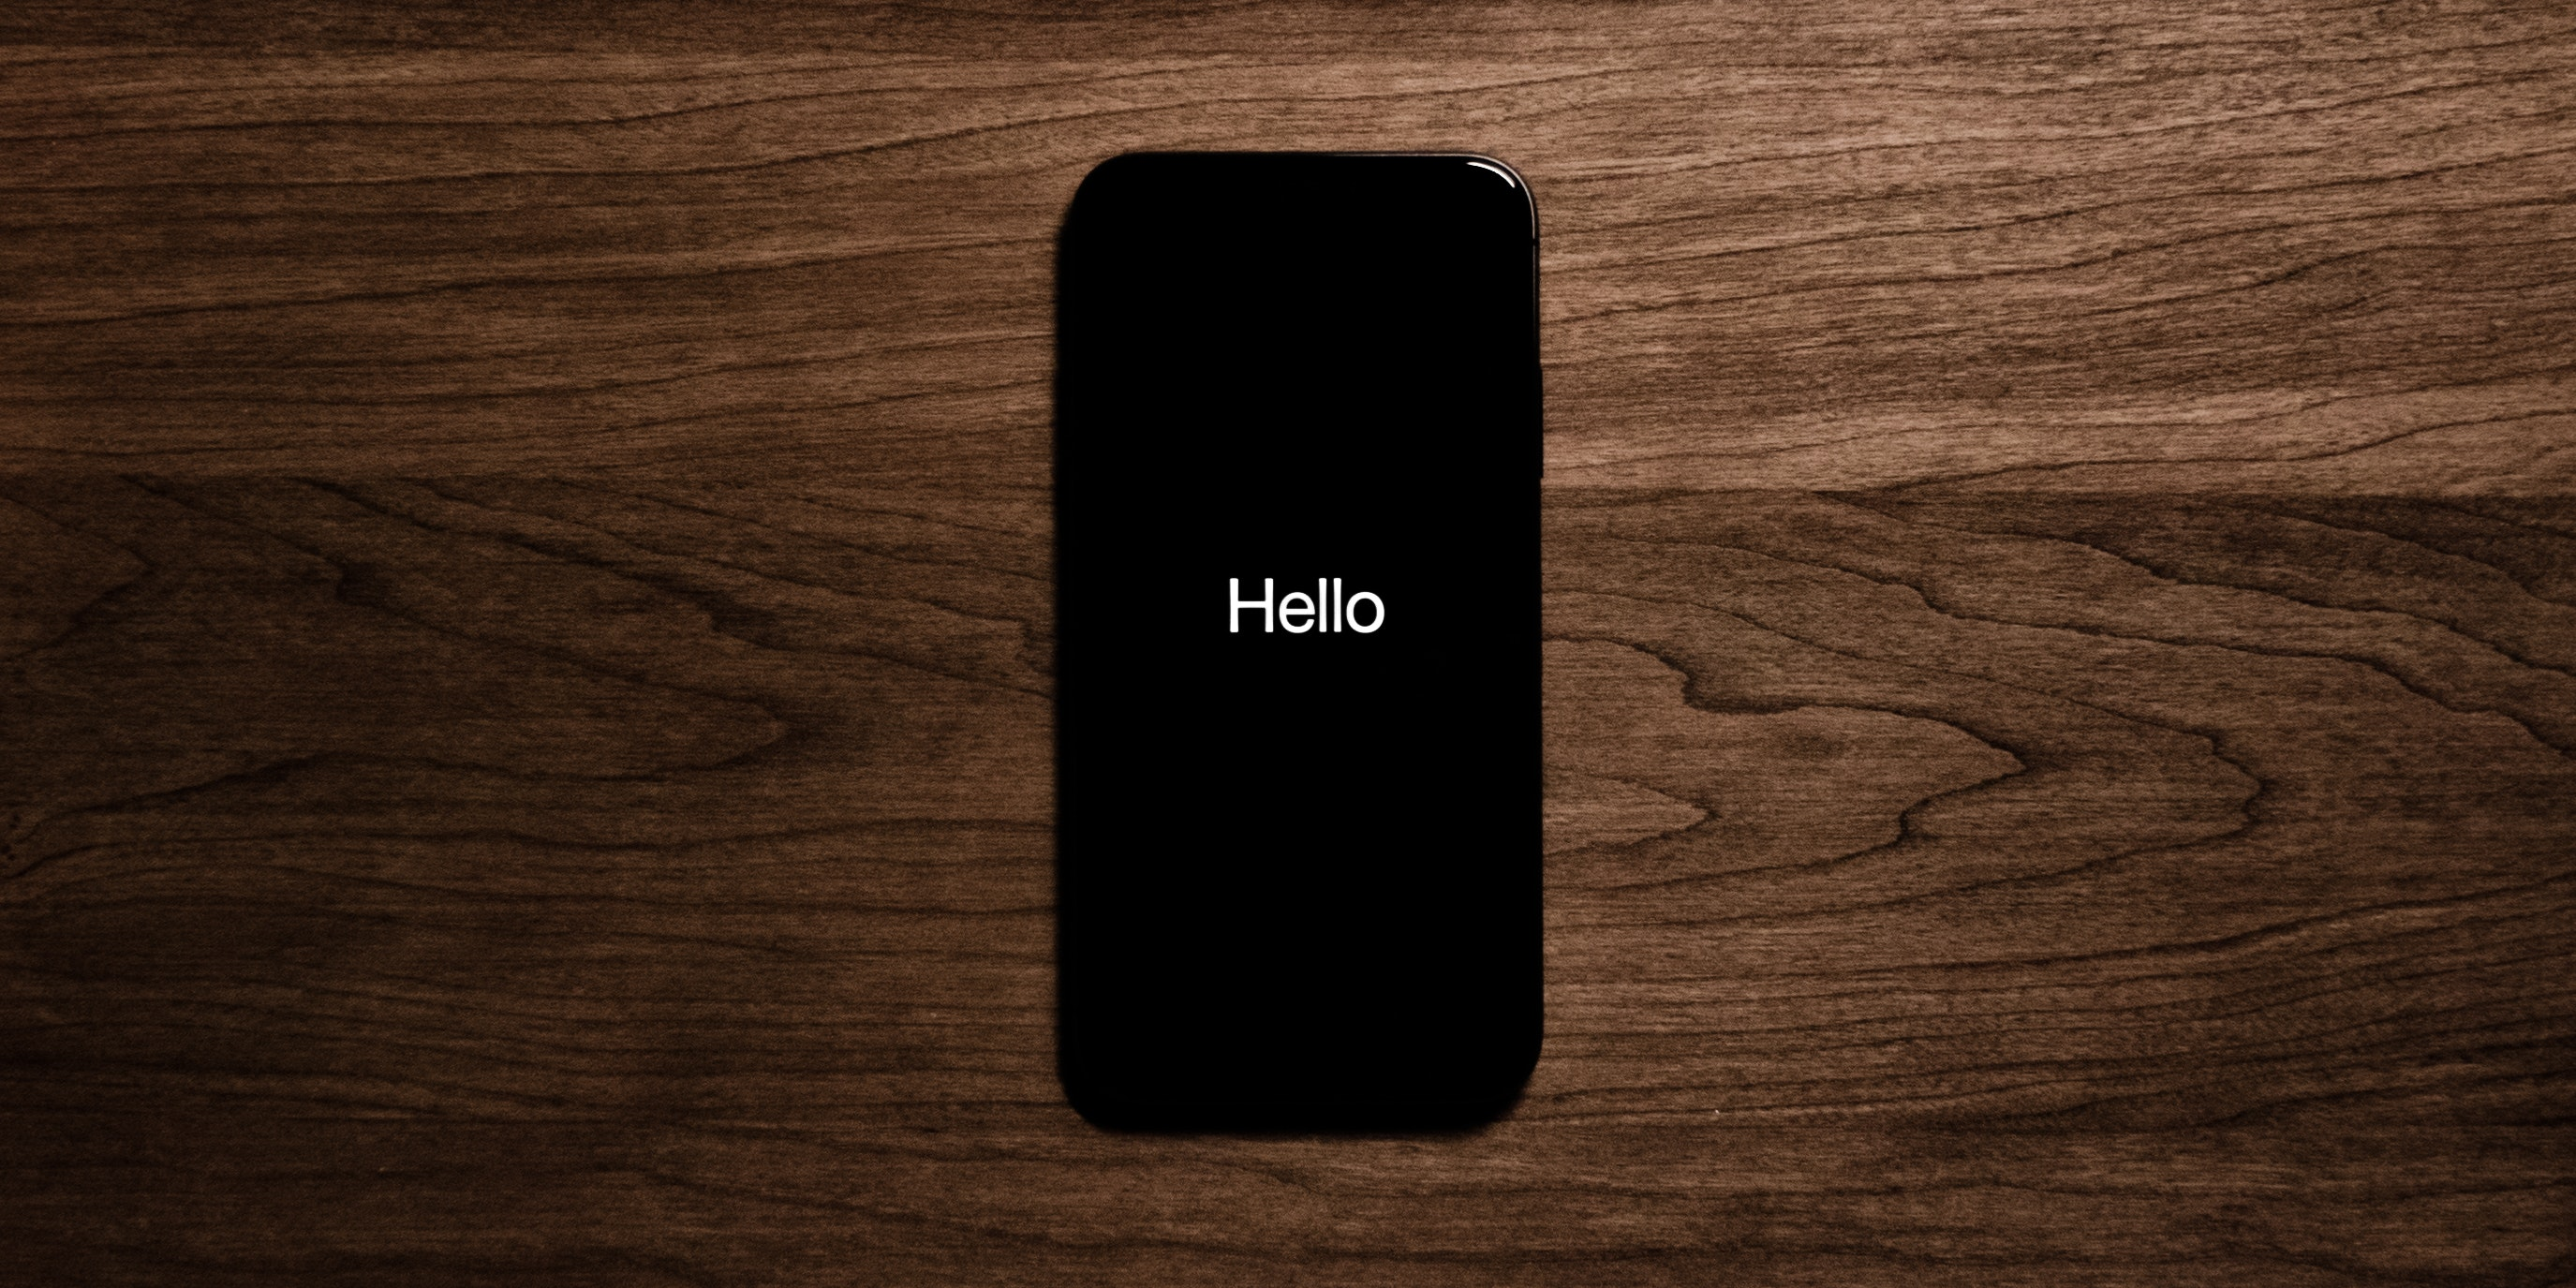 iPhone 9 Leaks: Release Date, Price, and How It Compares to iPhone X